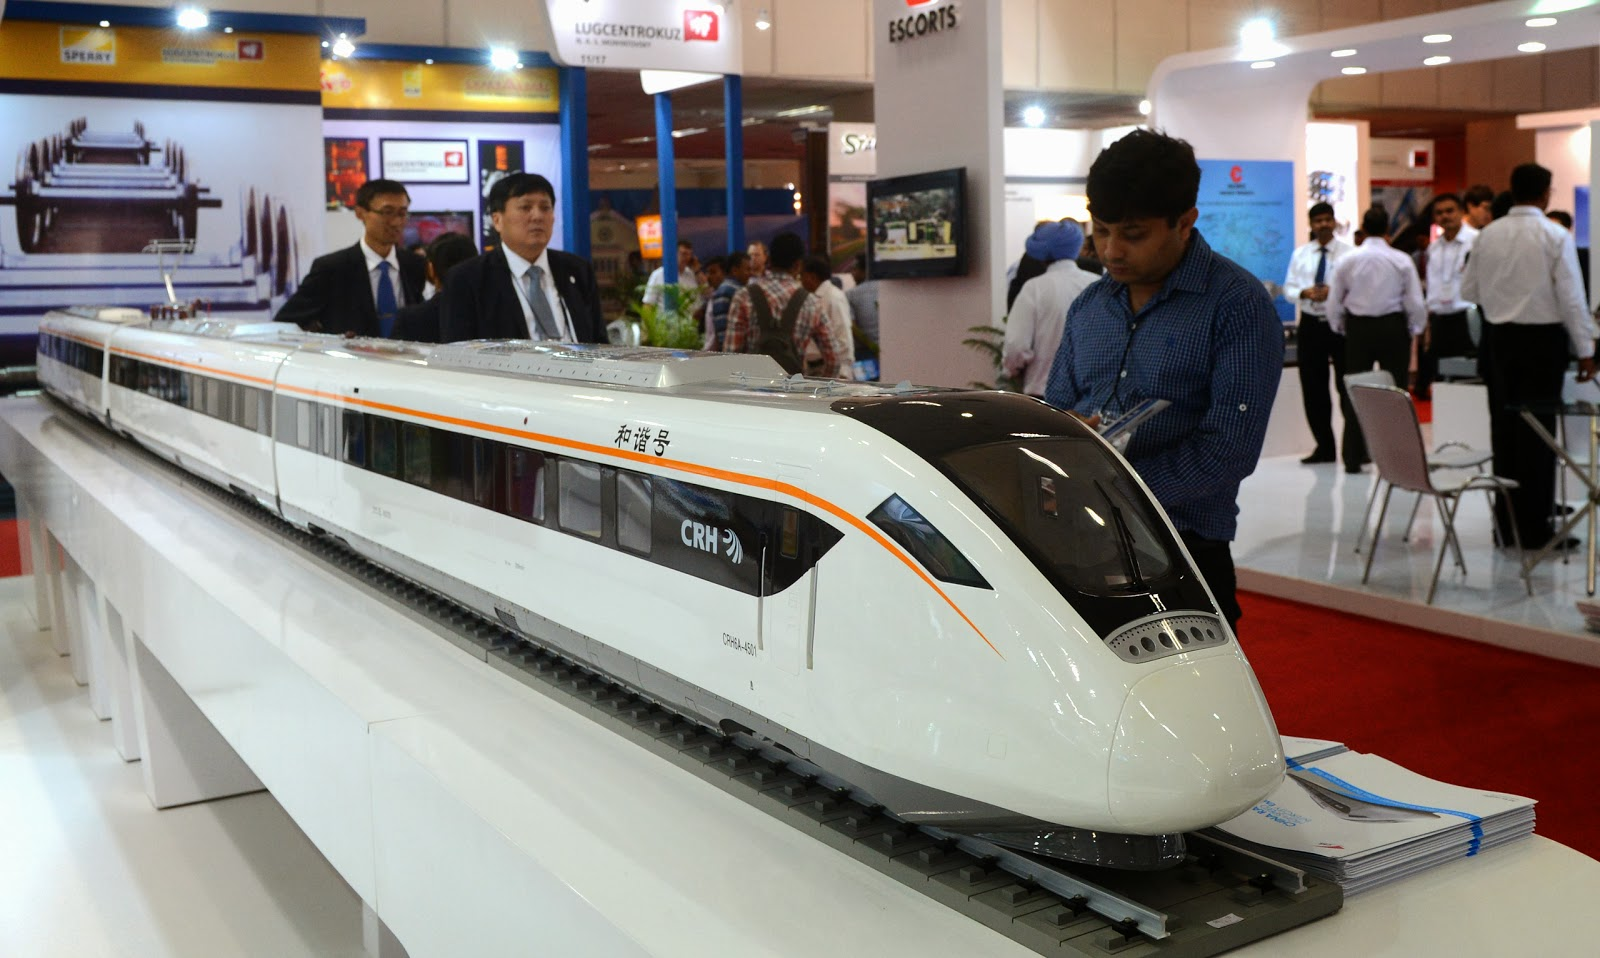 China, CHR Train, Confederation of Indian Industry (CII), Exhibition, India, Industry, International Railway Equipment Exhibition (IREE), New Delhi, Railway, Train,